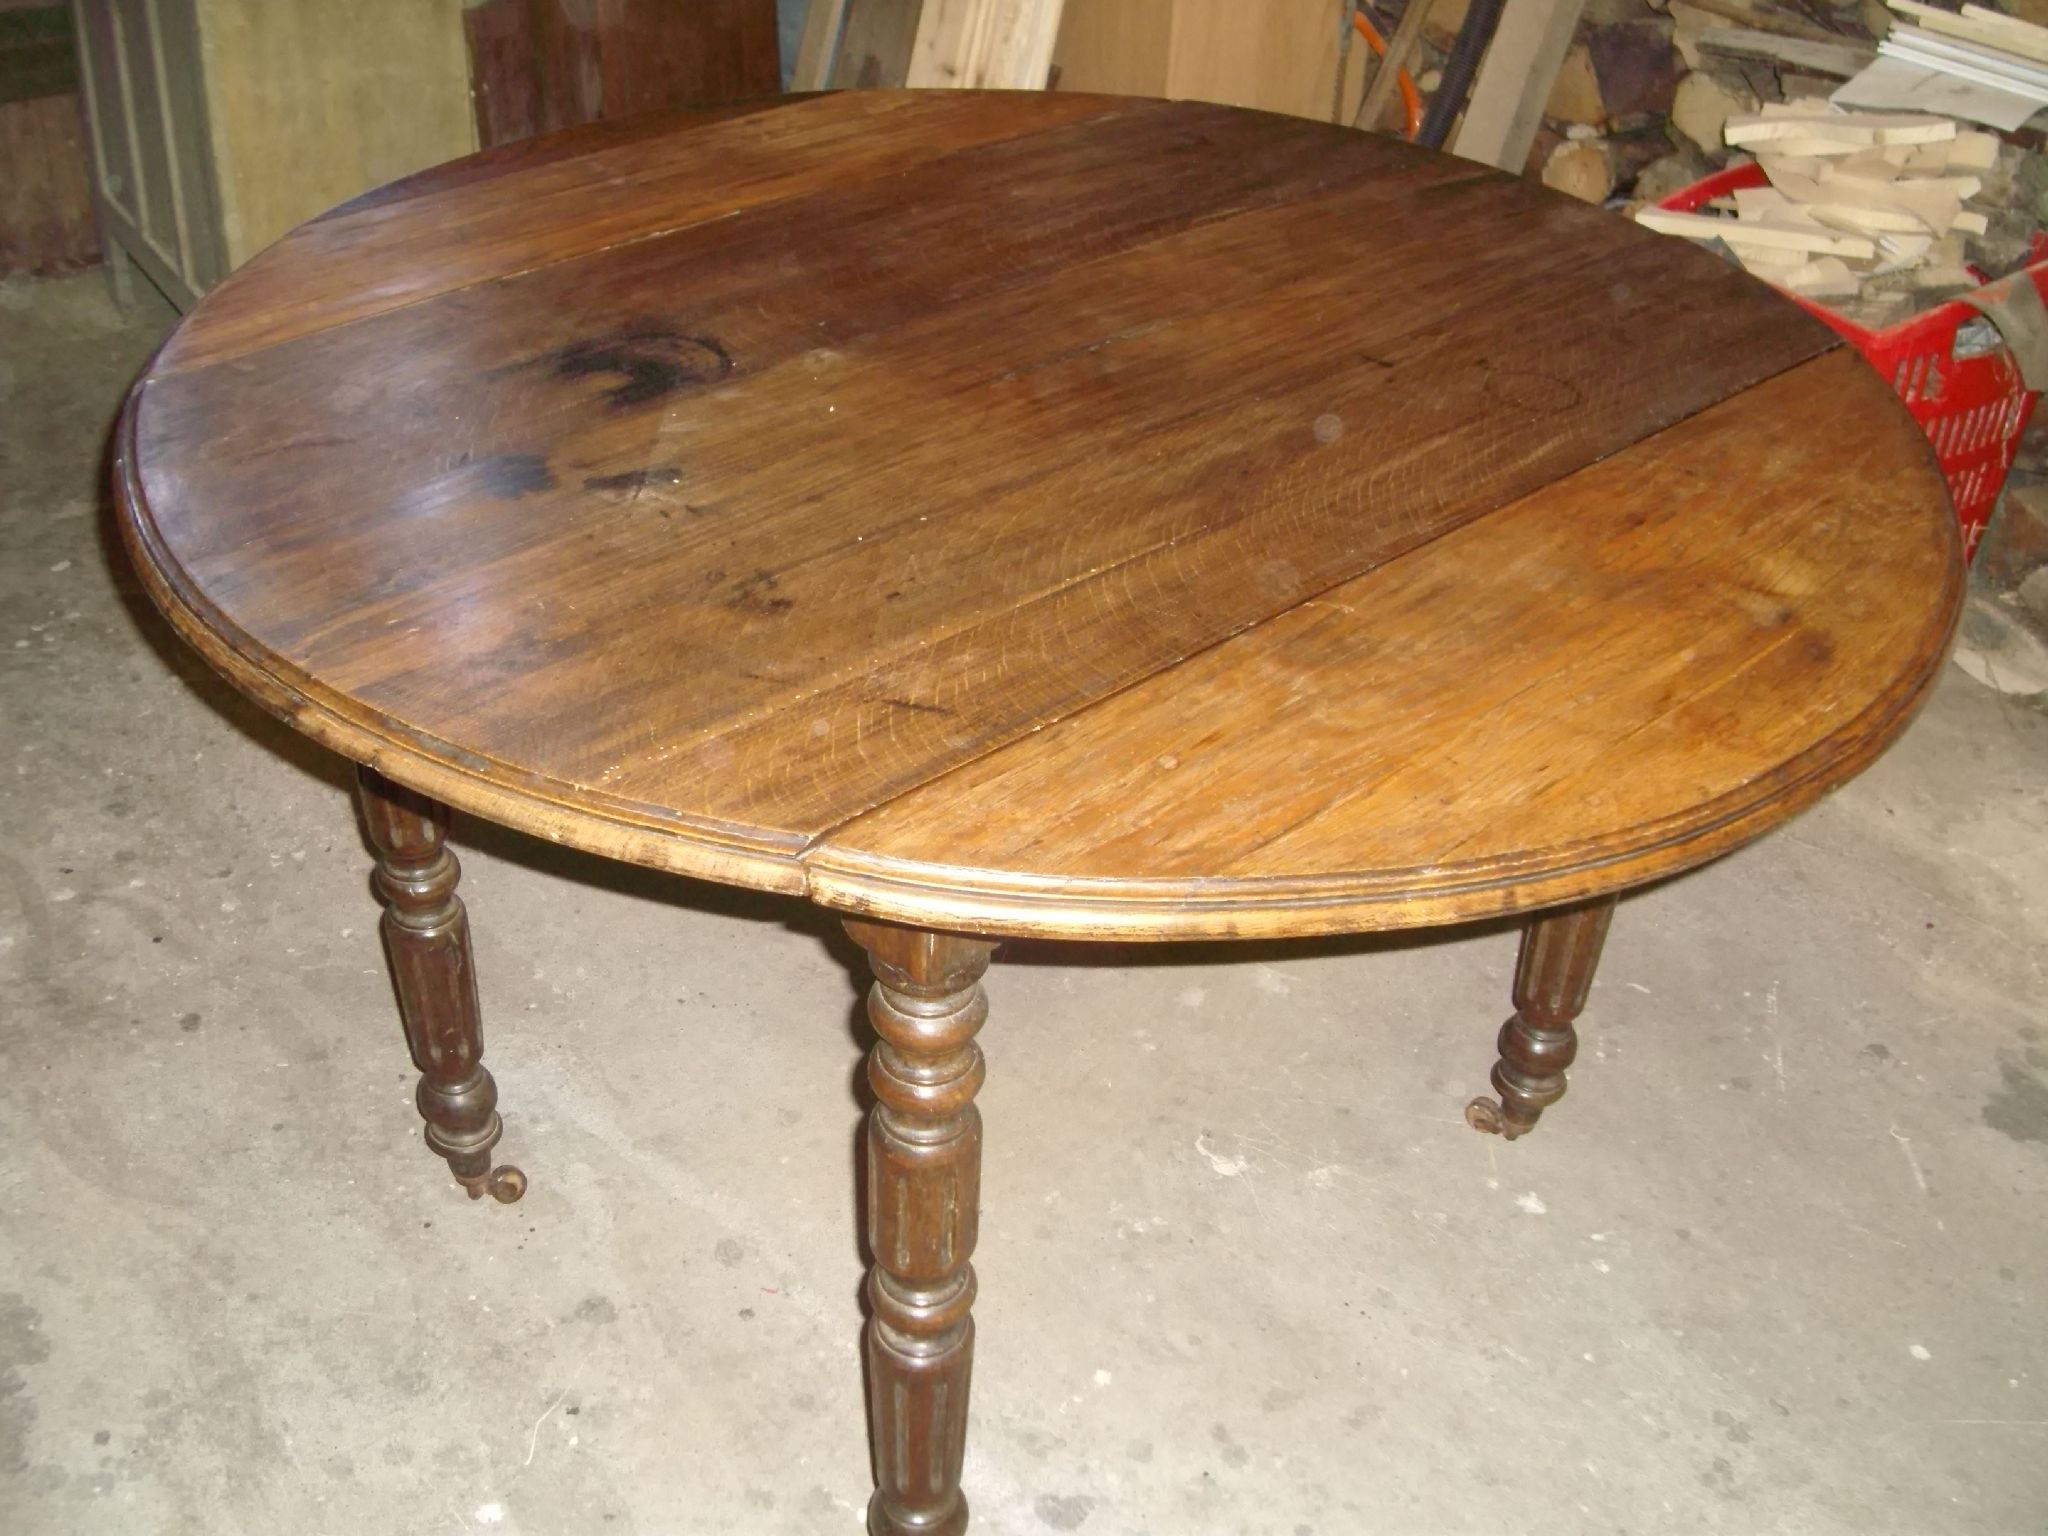 Customiser table ancienne sammlung von - Table bistrot bois ancienne ...